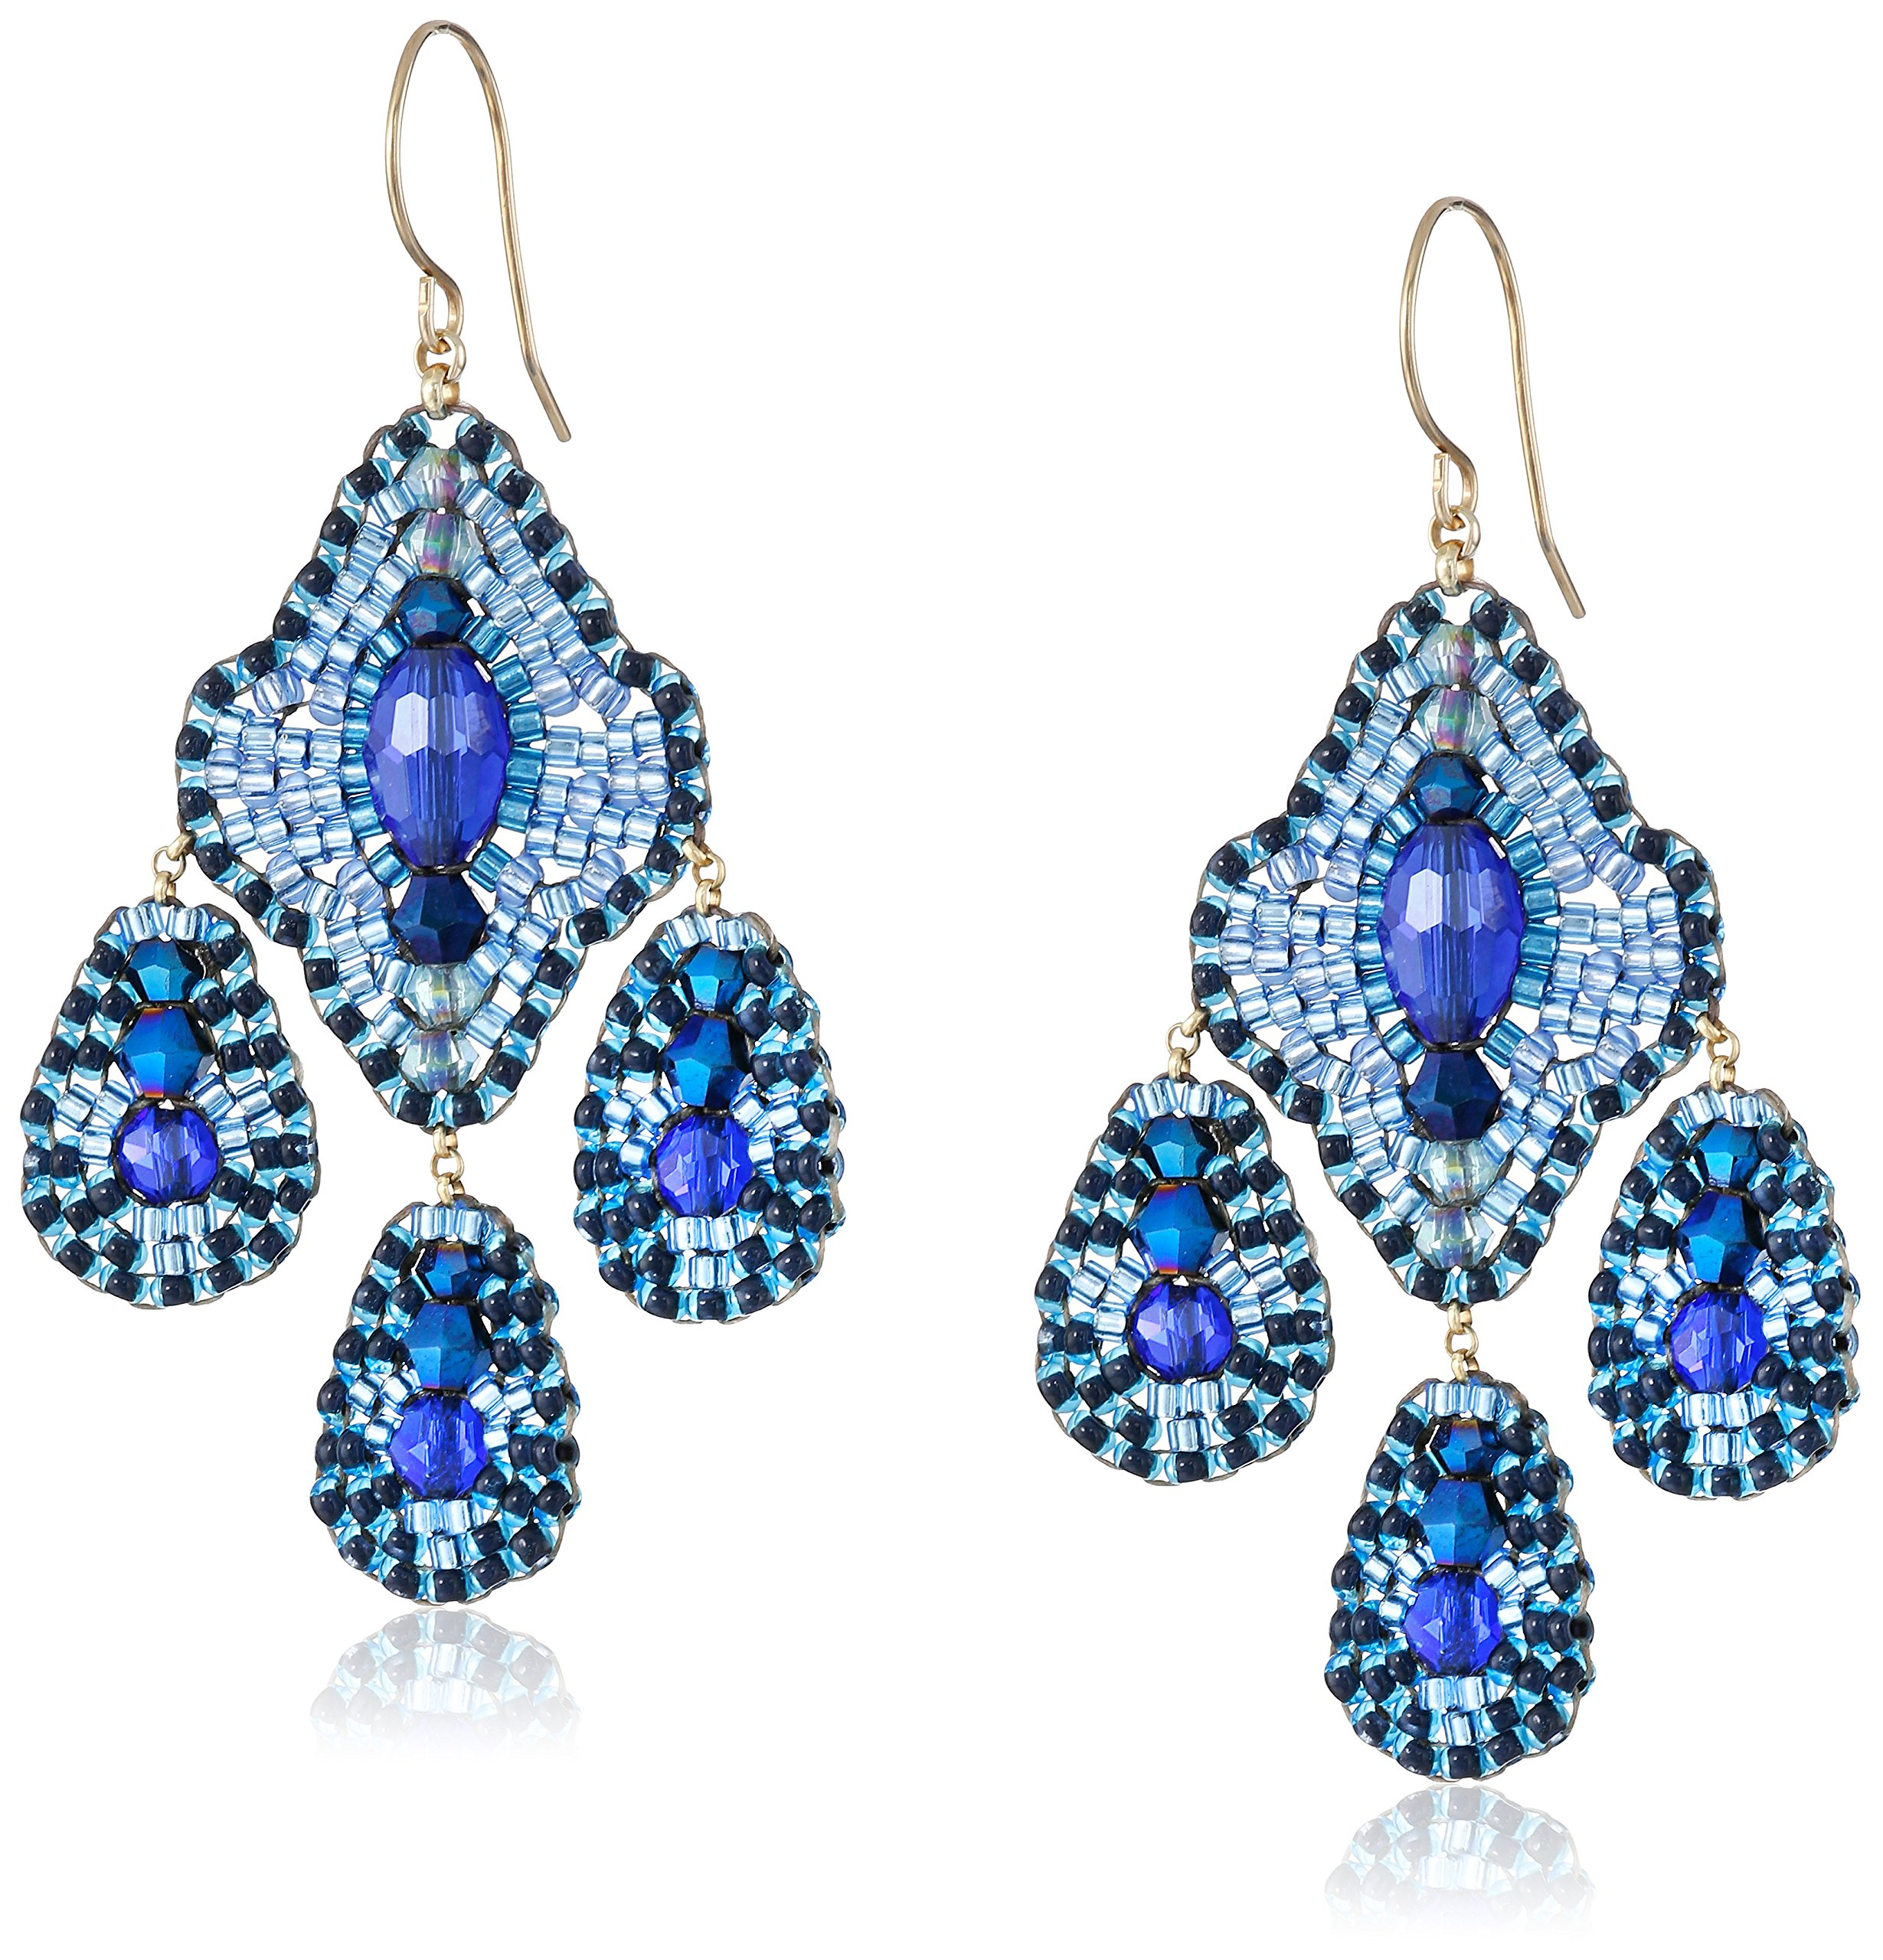 Miguel Ases Deep Blue 3-Drop Earrings by Miguel Ases